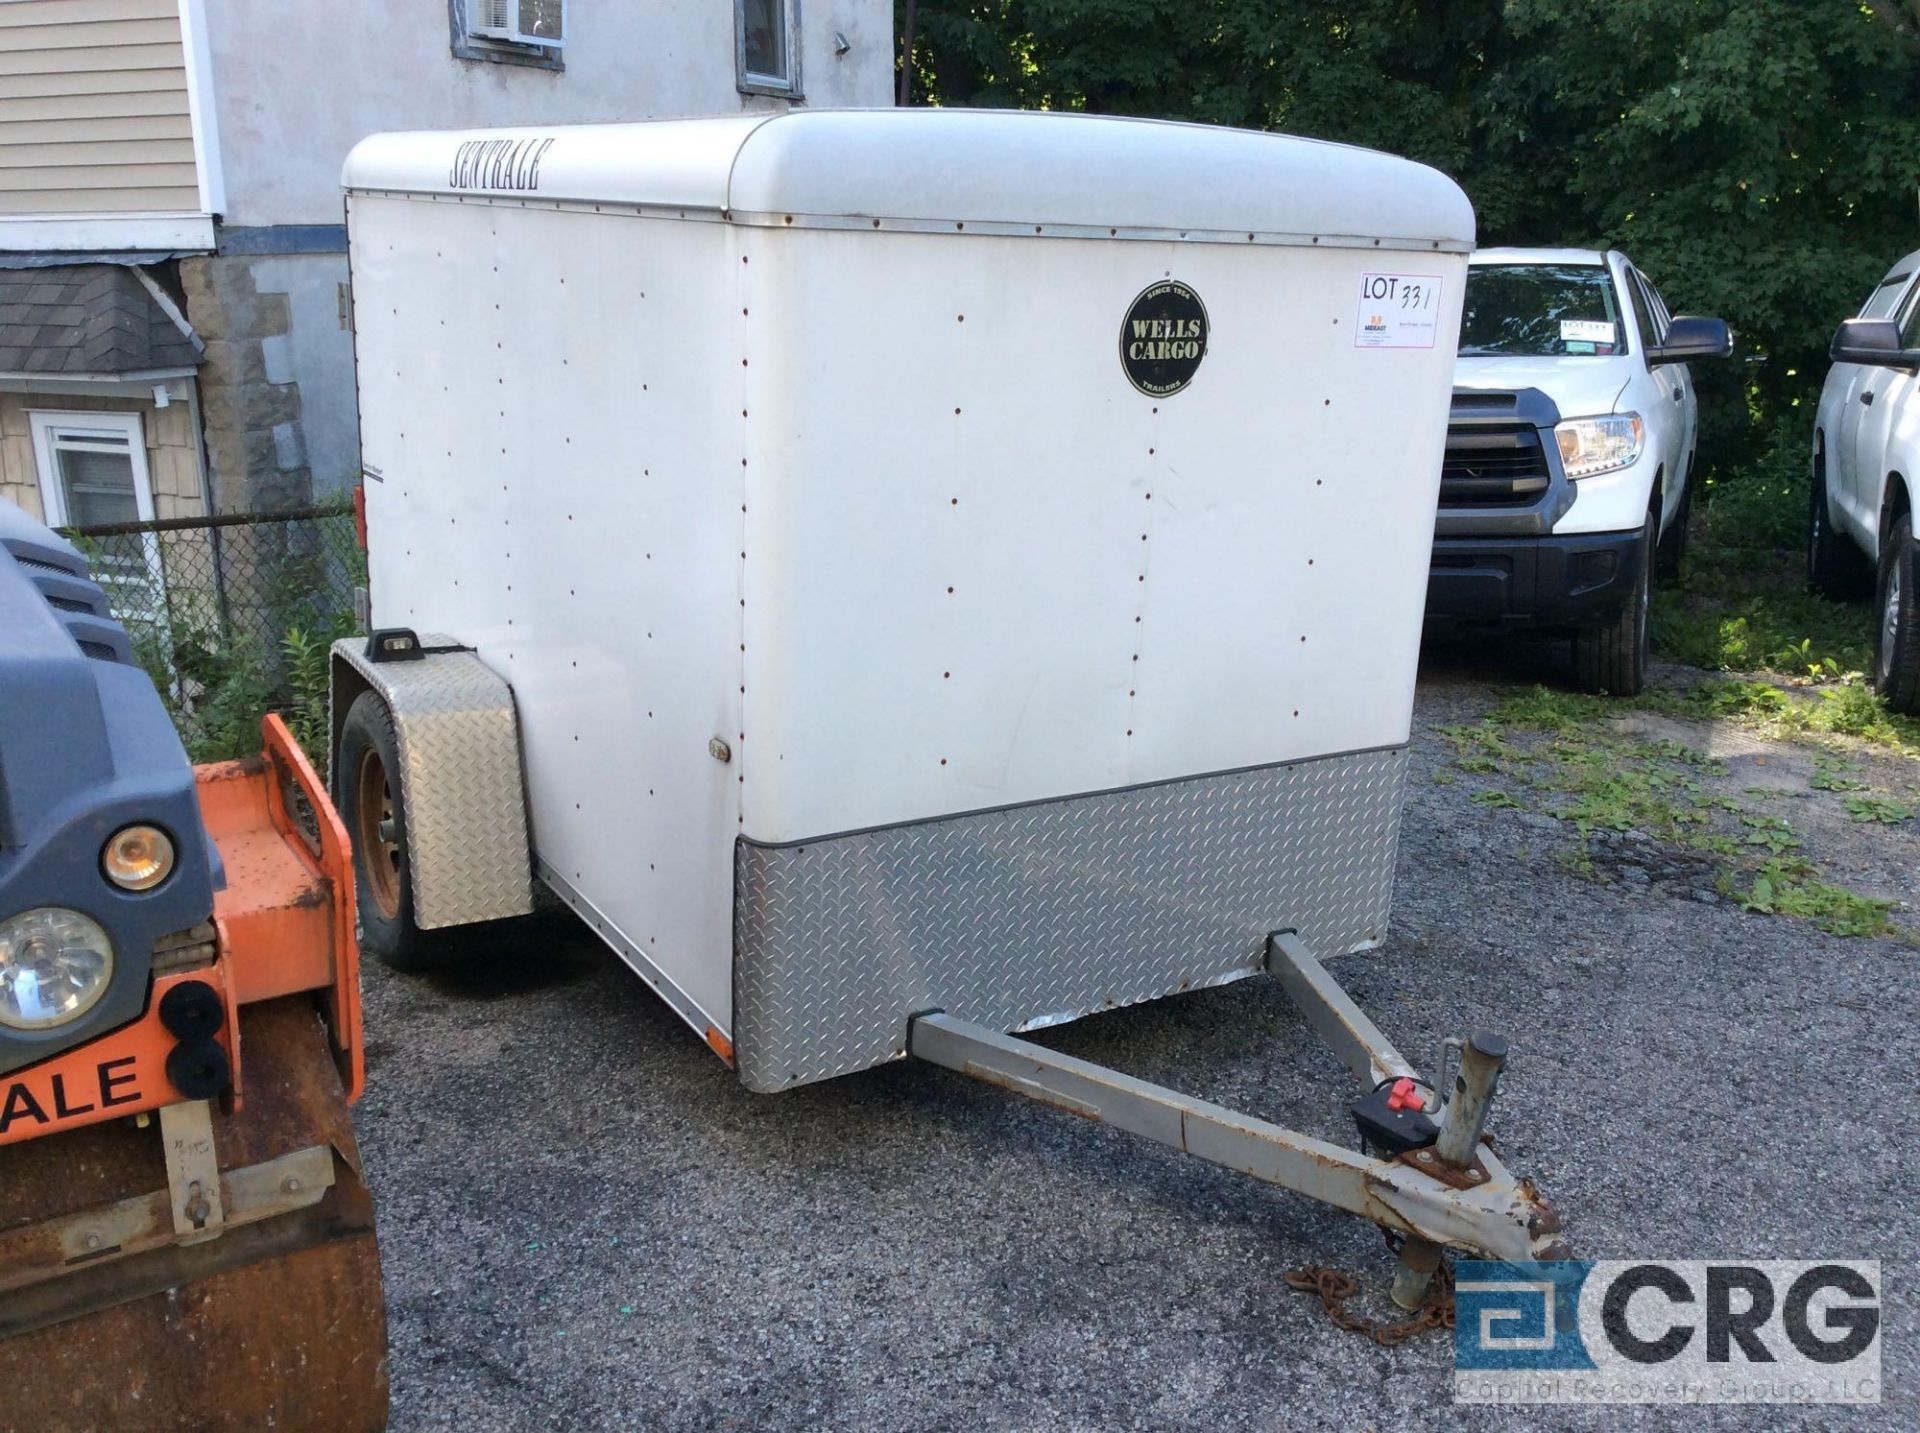 Lot 331 - 2005 Wells Cargo SW8 Enclosed Cargo Trailer, 8' X 5' VIN # 1WC200C1X58007492